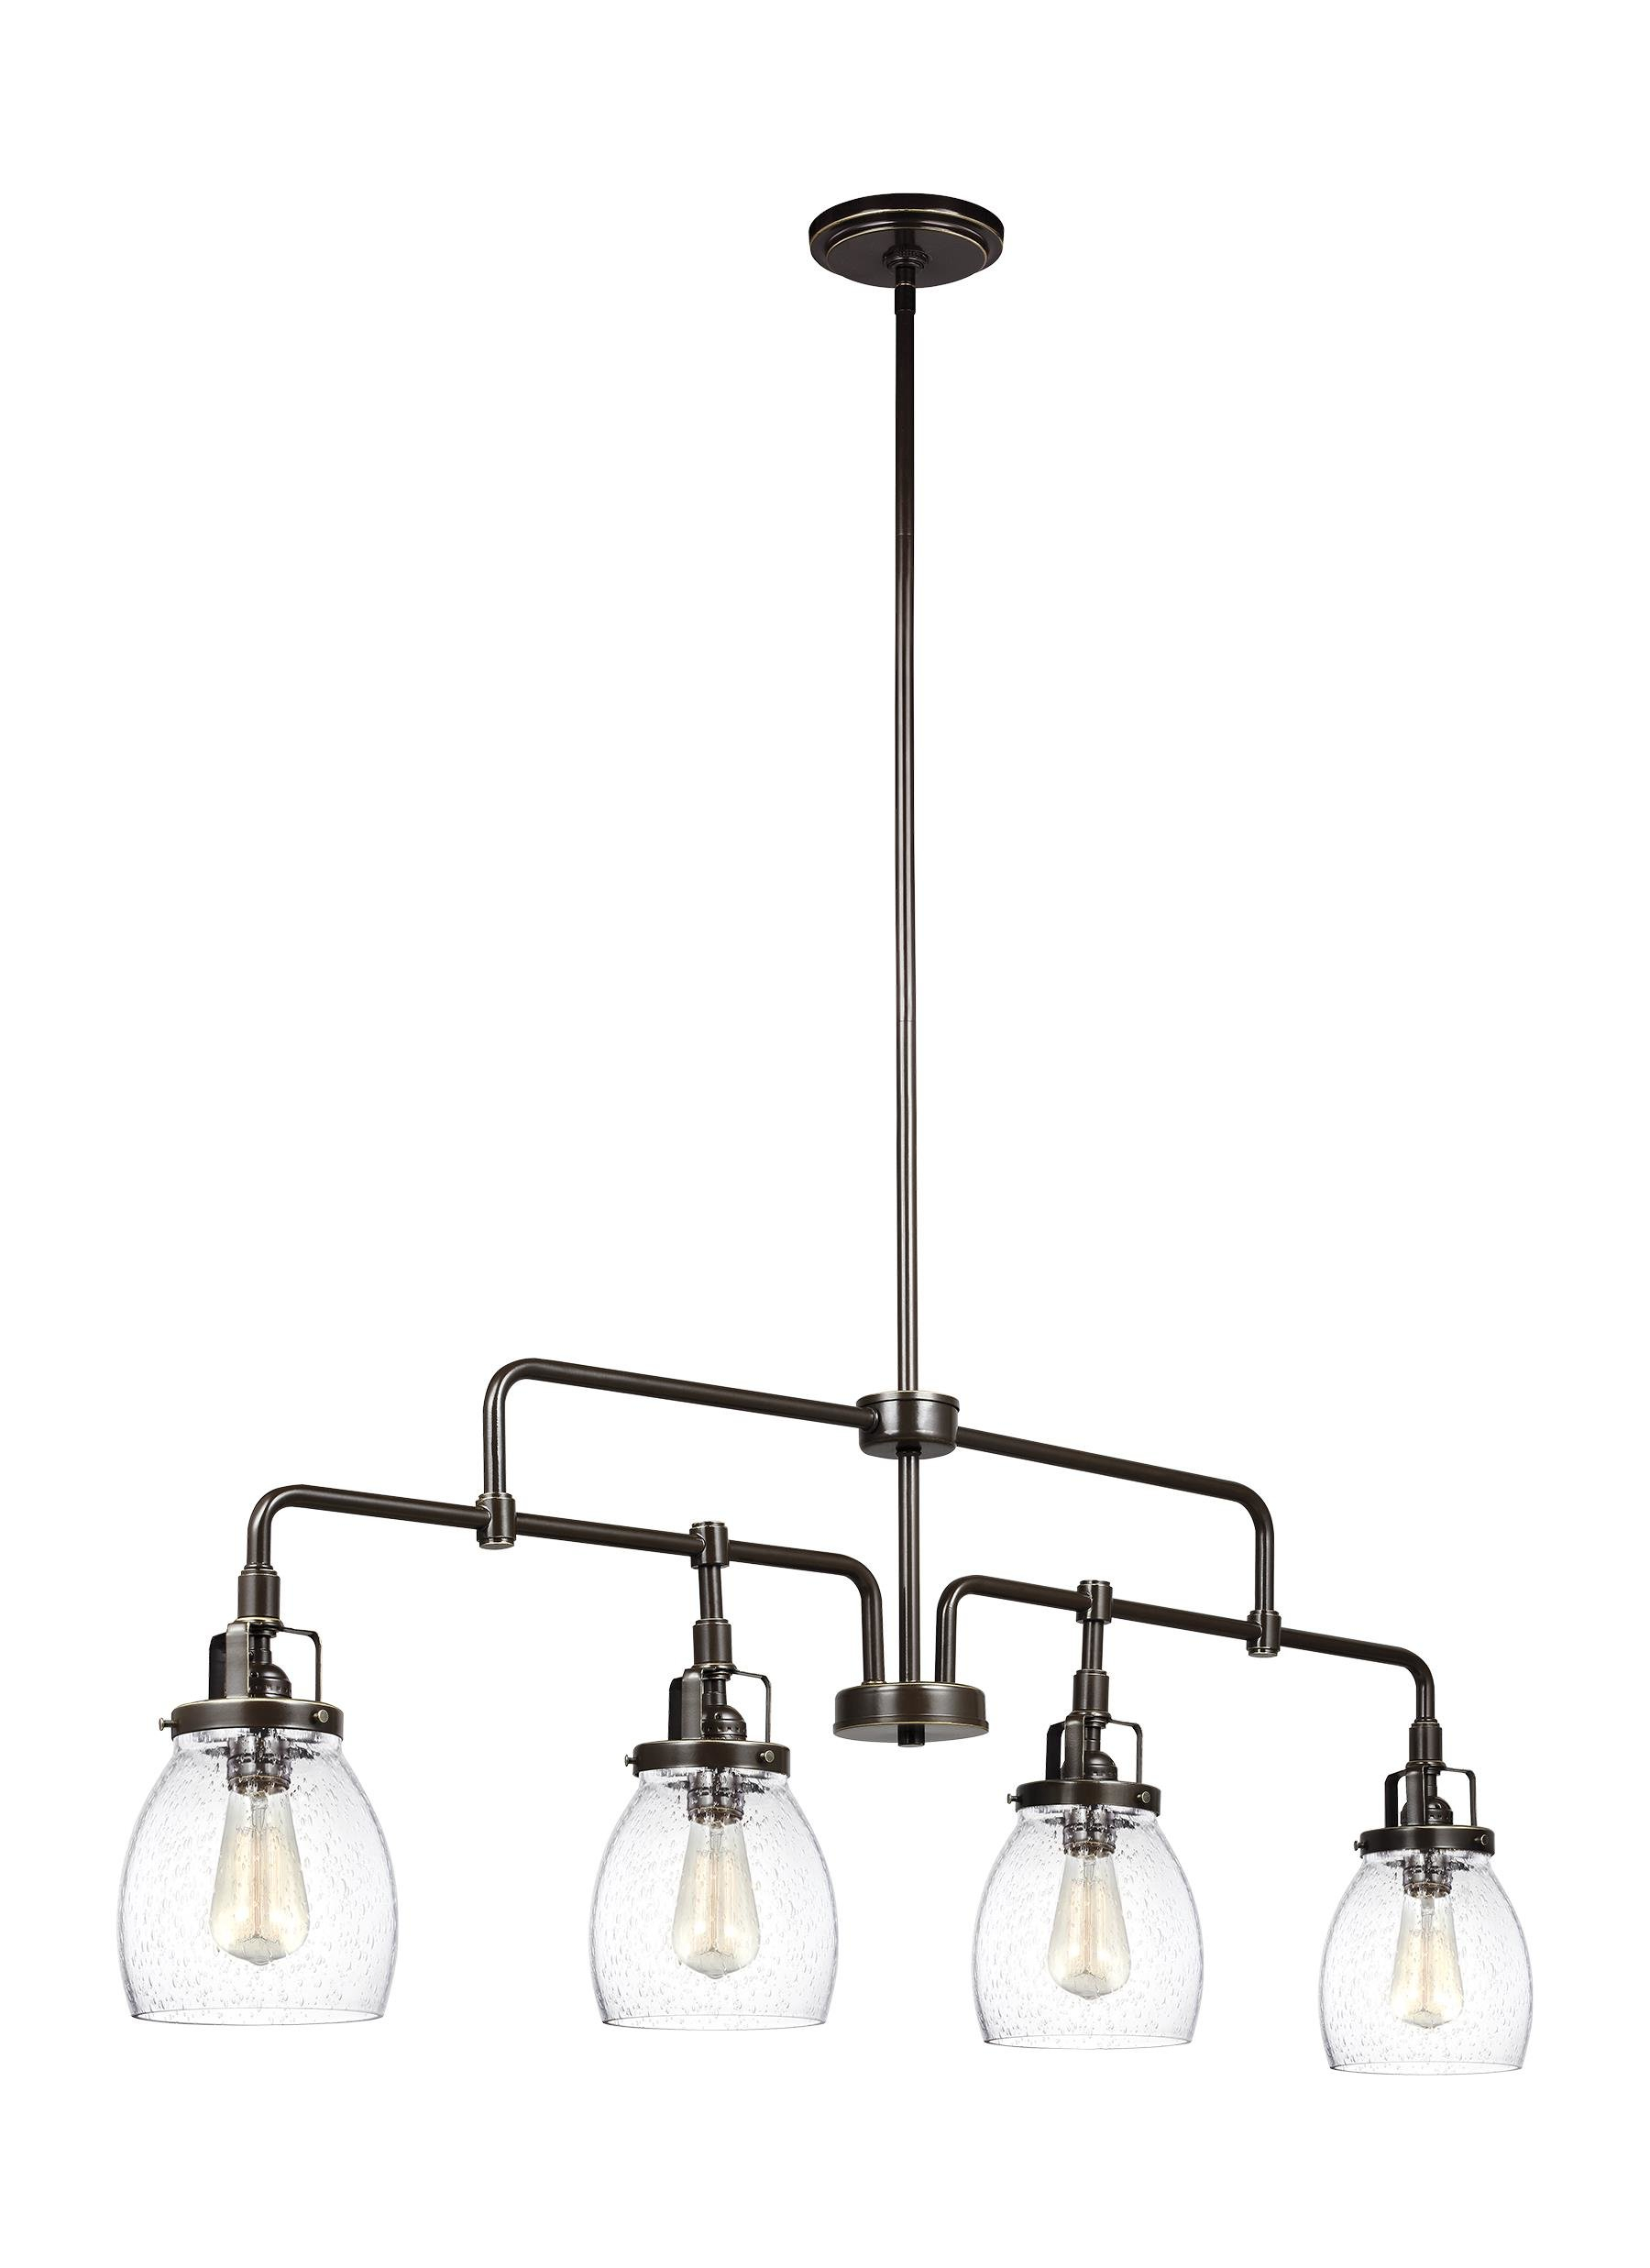 Houon 4 Light Kitchen Island Pendant Pertaining To Houon 1 Light Cone Bell Pendants (View 24 of 30)